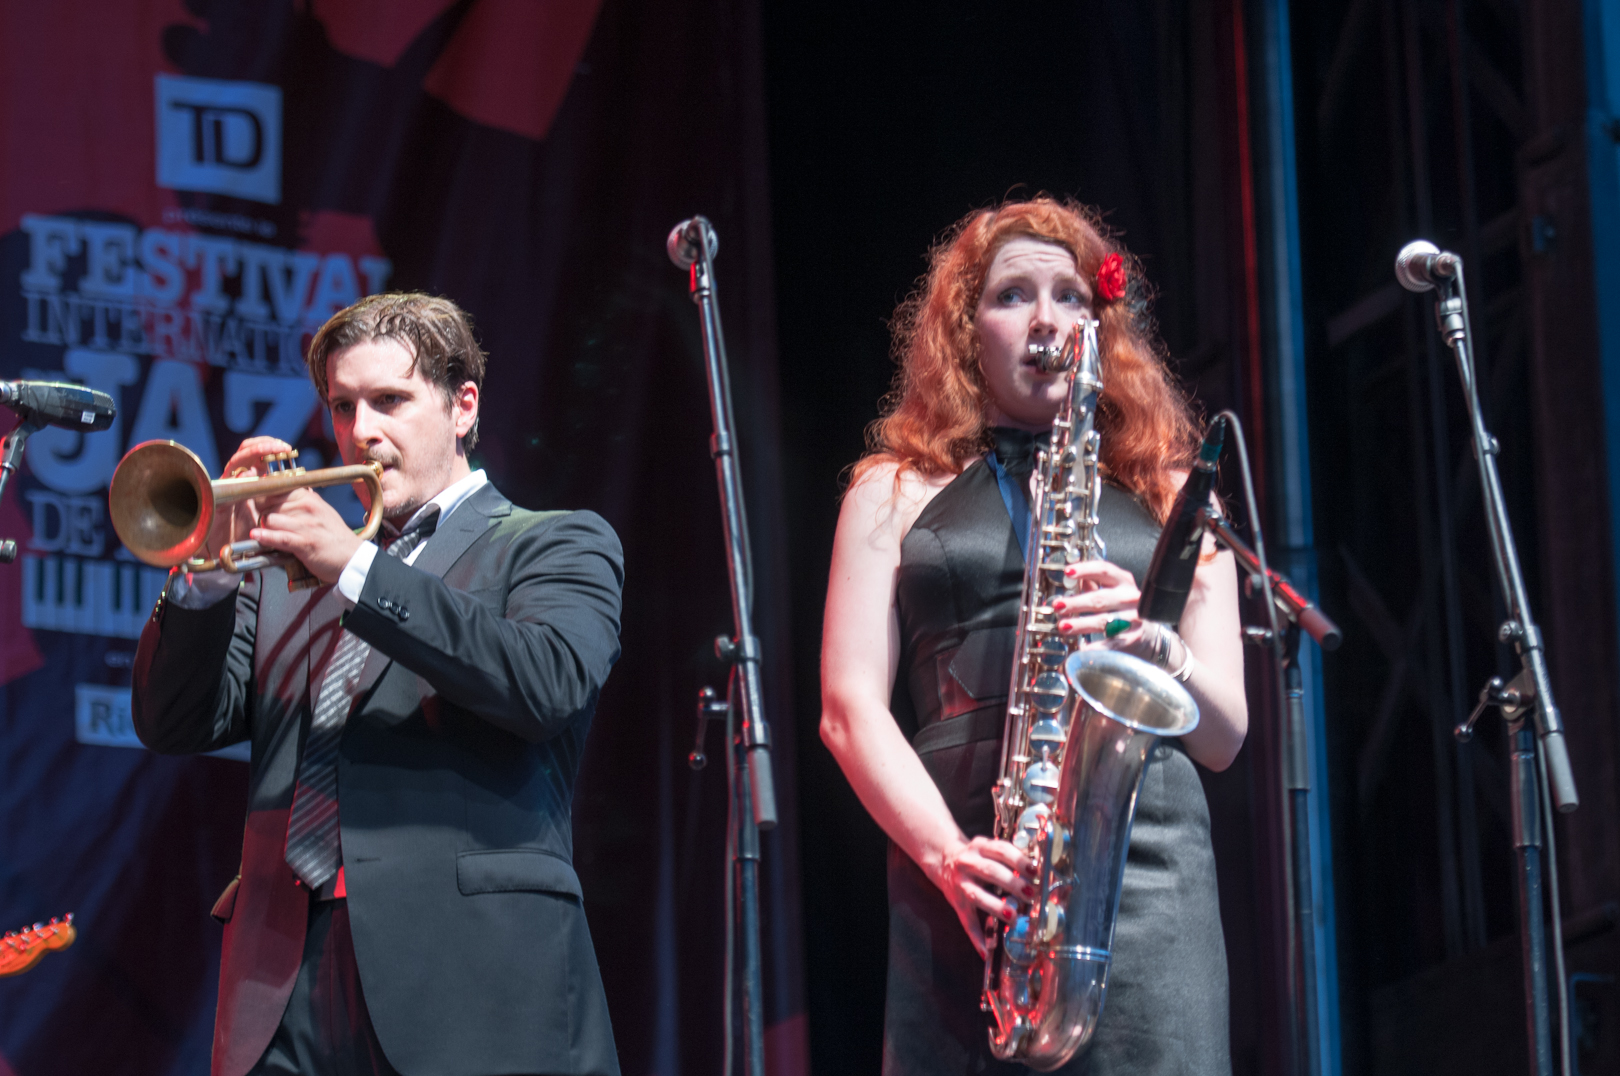 William Sperandei and Alison Young with Tyler Yarema at the Montreal International Jazz Festival 2012